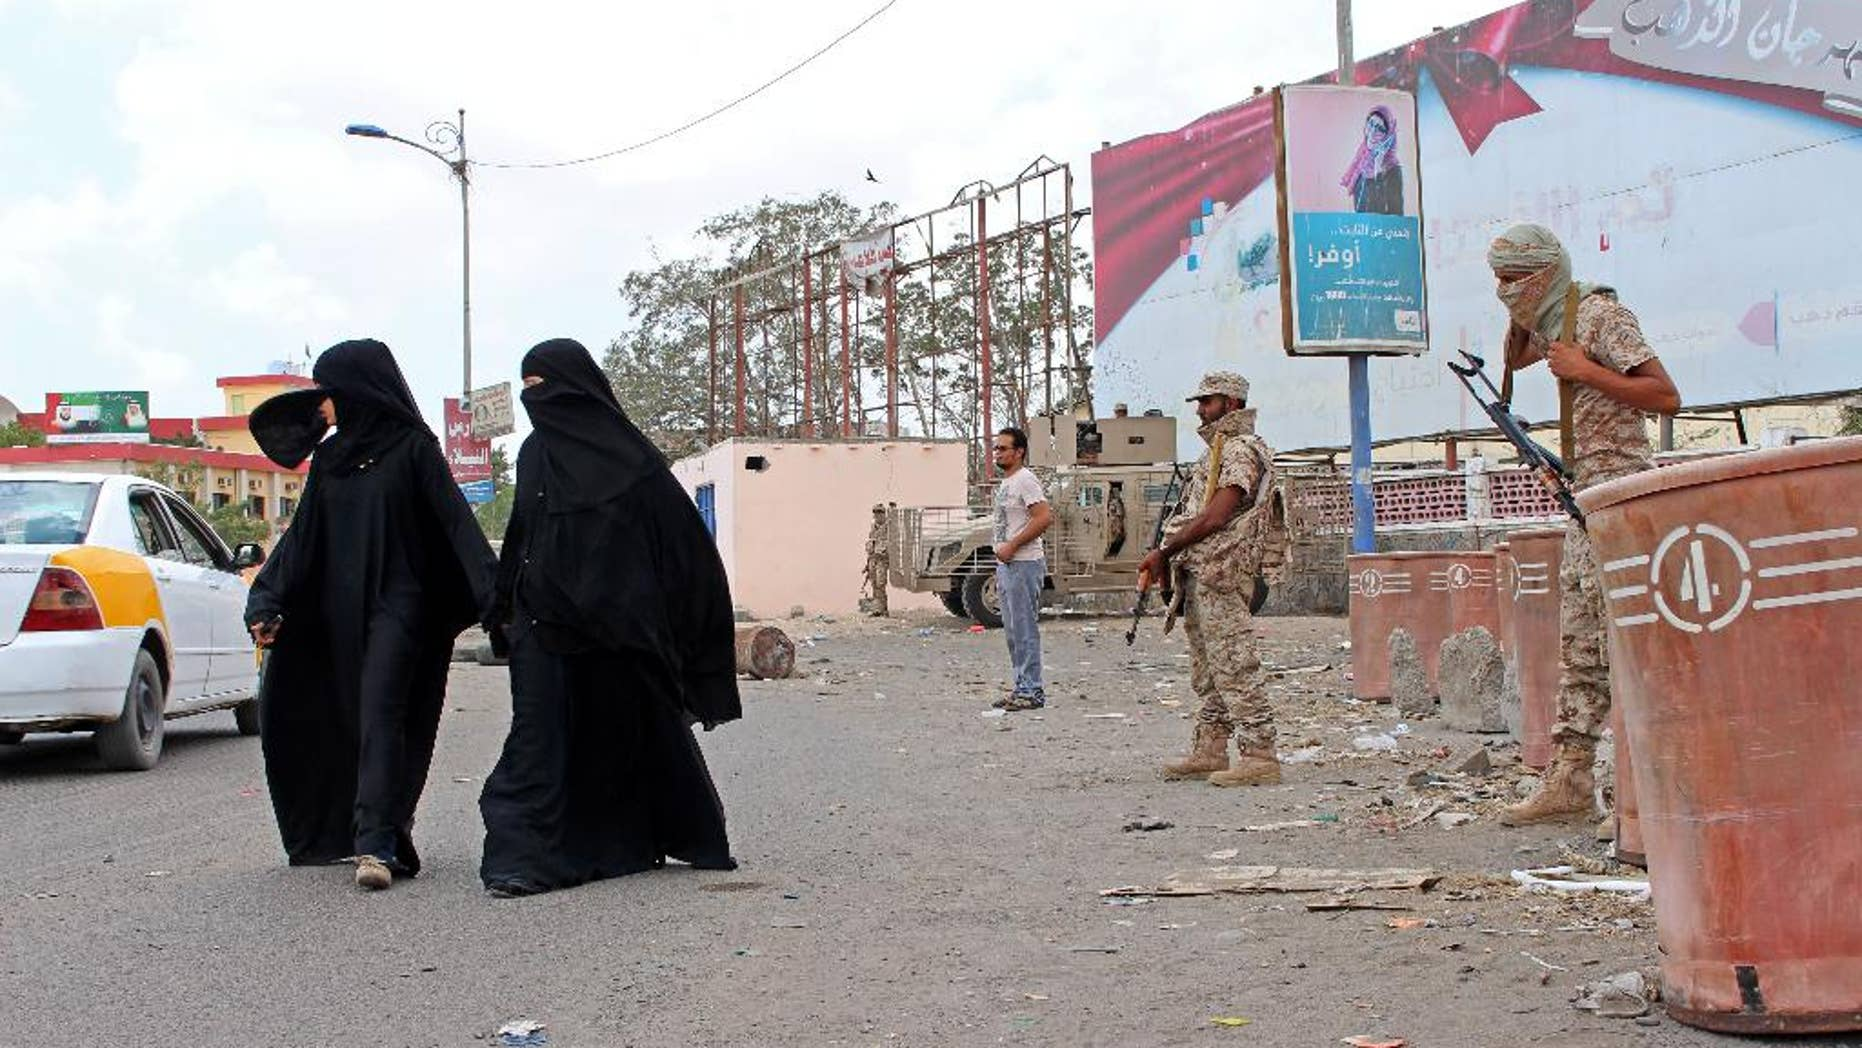 Pro-government forces stand guard on a street in the southern port city of Aden, Yemen, Wednesday, March 30, 2016. A top Yemeni security official says pro-government forces have carried out a series of raids against al-Qaida in the southern port city of Aden, arresting dozens of suspects and causing the militants to flee from key areas. (AP Photo/Wael Qubady)